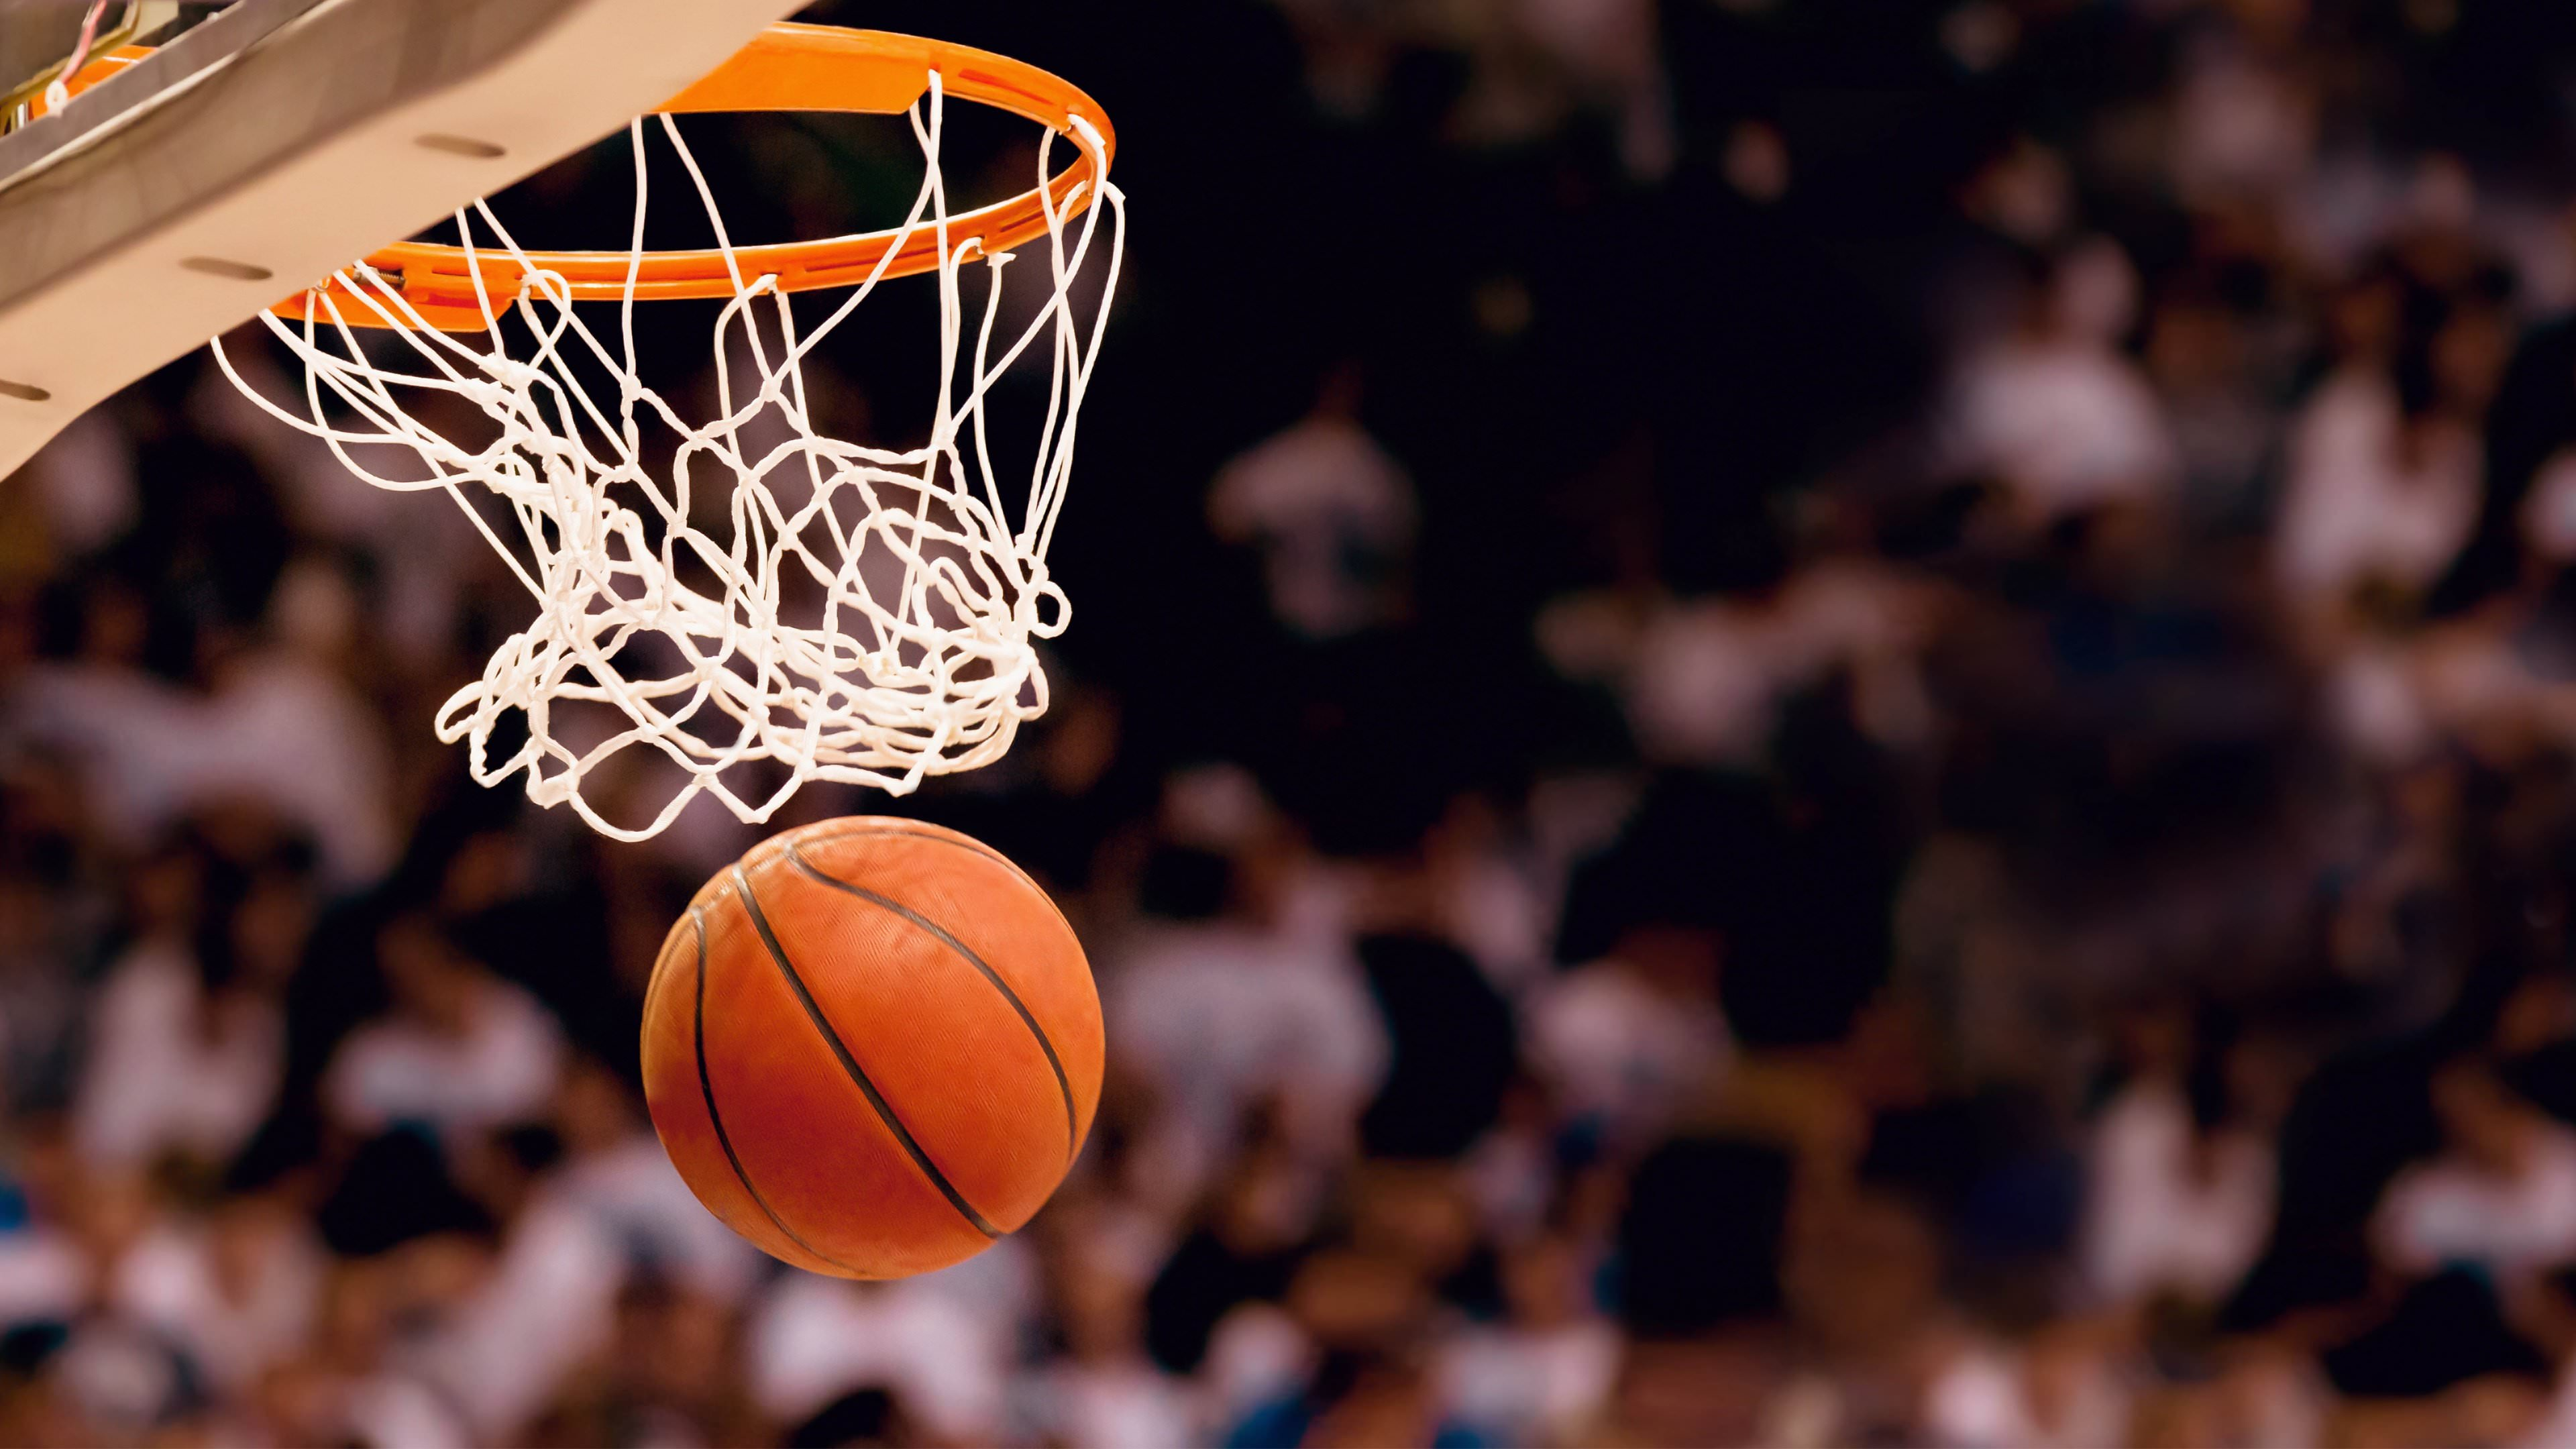 4k Basketball Wallpapers Top Free 4k Basketball Backgrounds